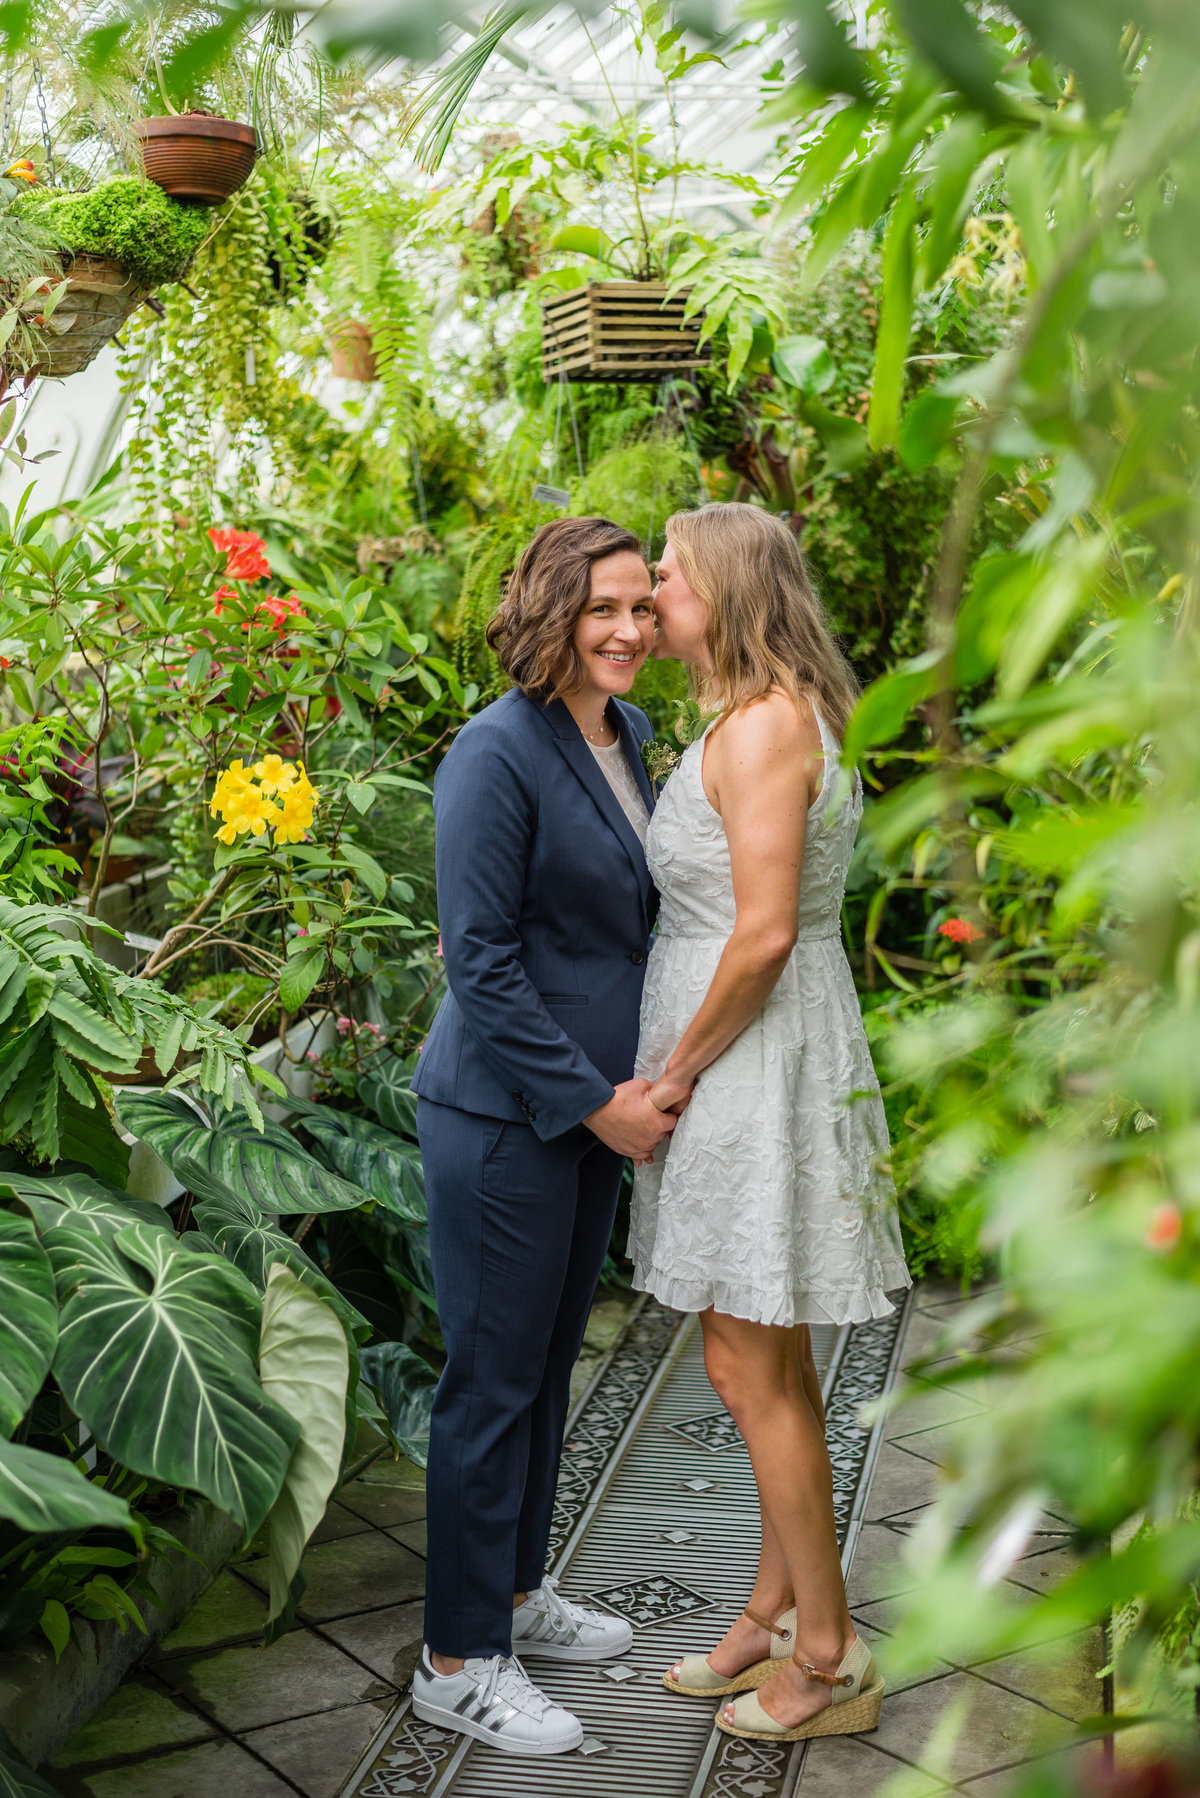 Kelly+Emilie-2019-Final-SMB-23